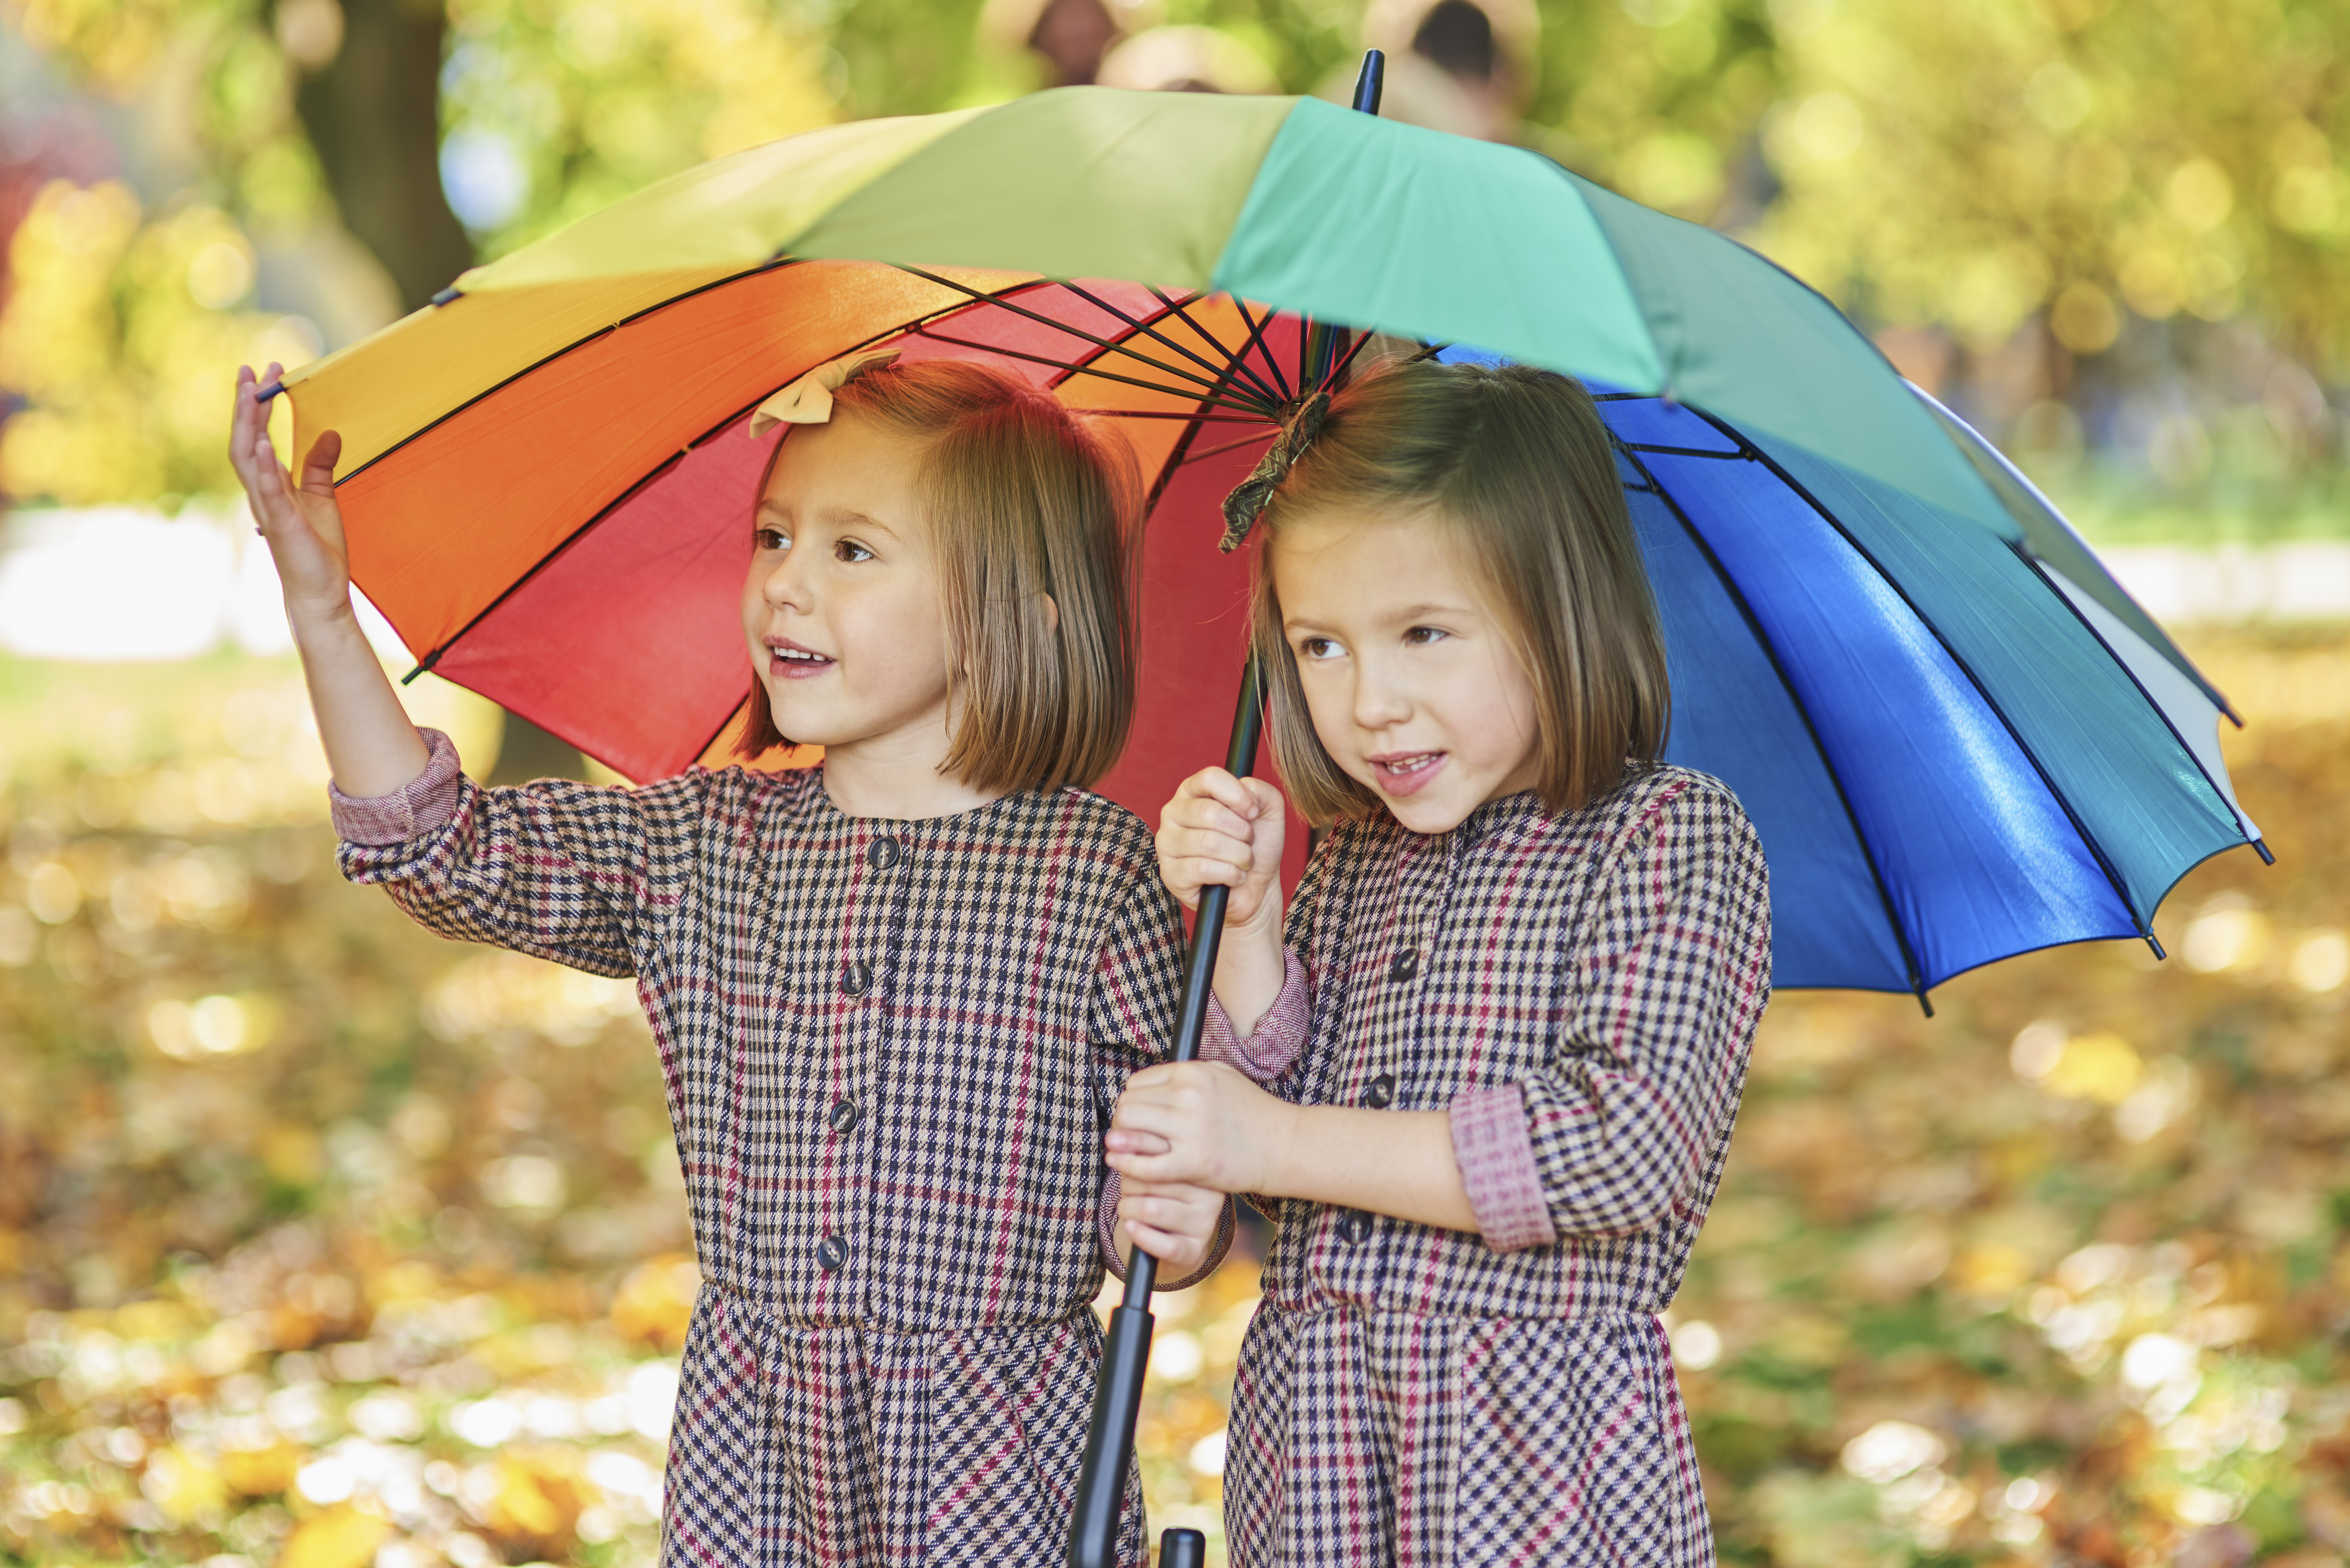 twins-looking-for-shelter-with-umbrella-5L53NKK